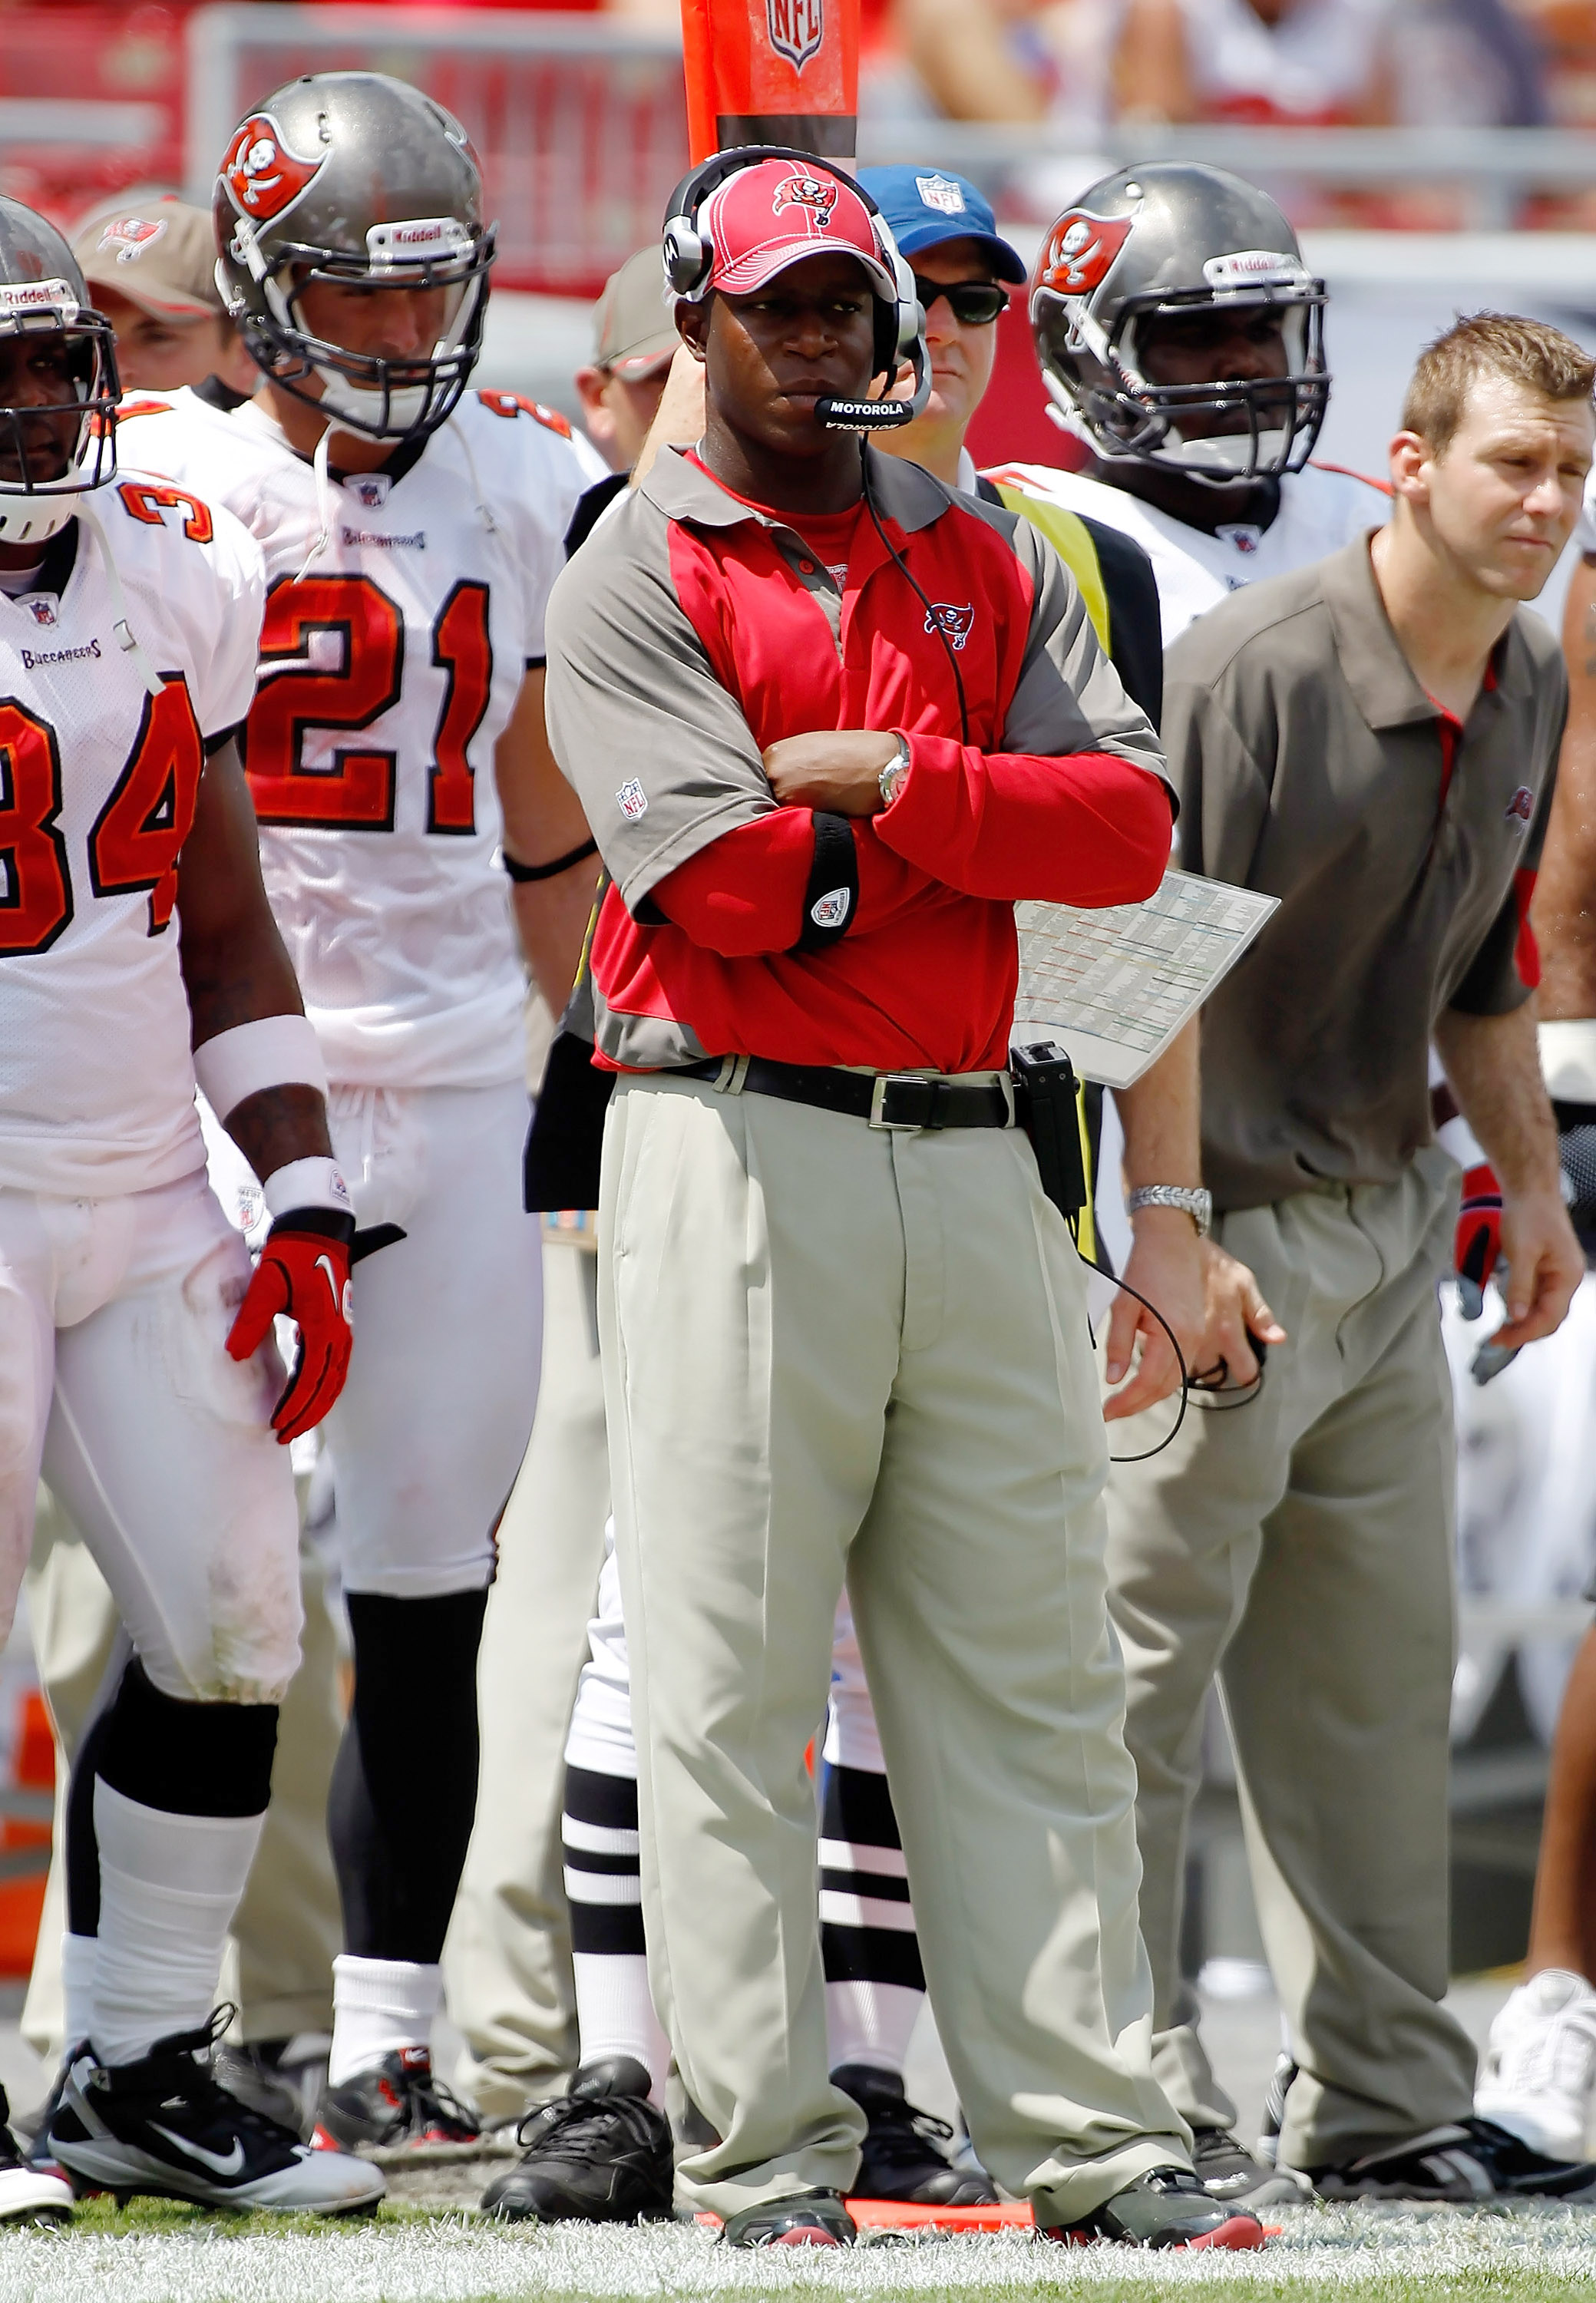 TAMPA, FL - SEPTEMBER 12:  Head coach Raheem Morris of the Tampa Bay Buccaneers watches his team against the Cleveland Browns during the NFL season opener game at Raymond James Stadium on September 12, 2010 in Tampa, Florida.  (Photo by J. Meric/Getty Ima